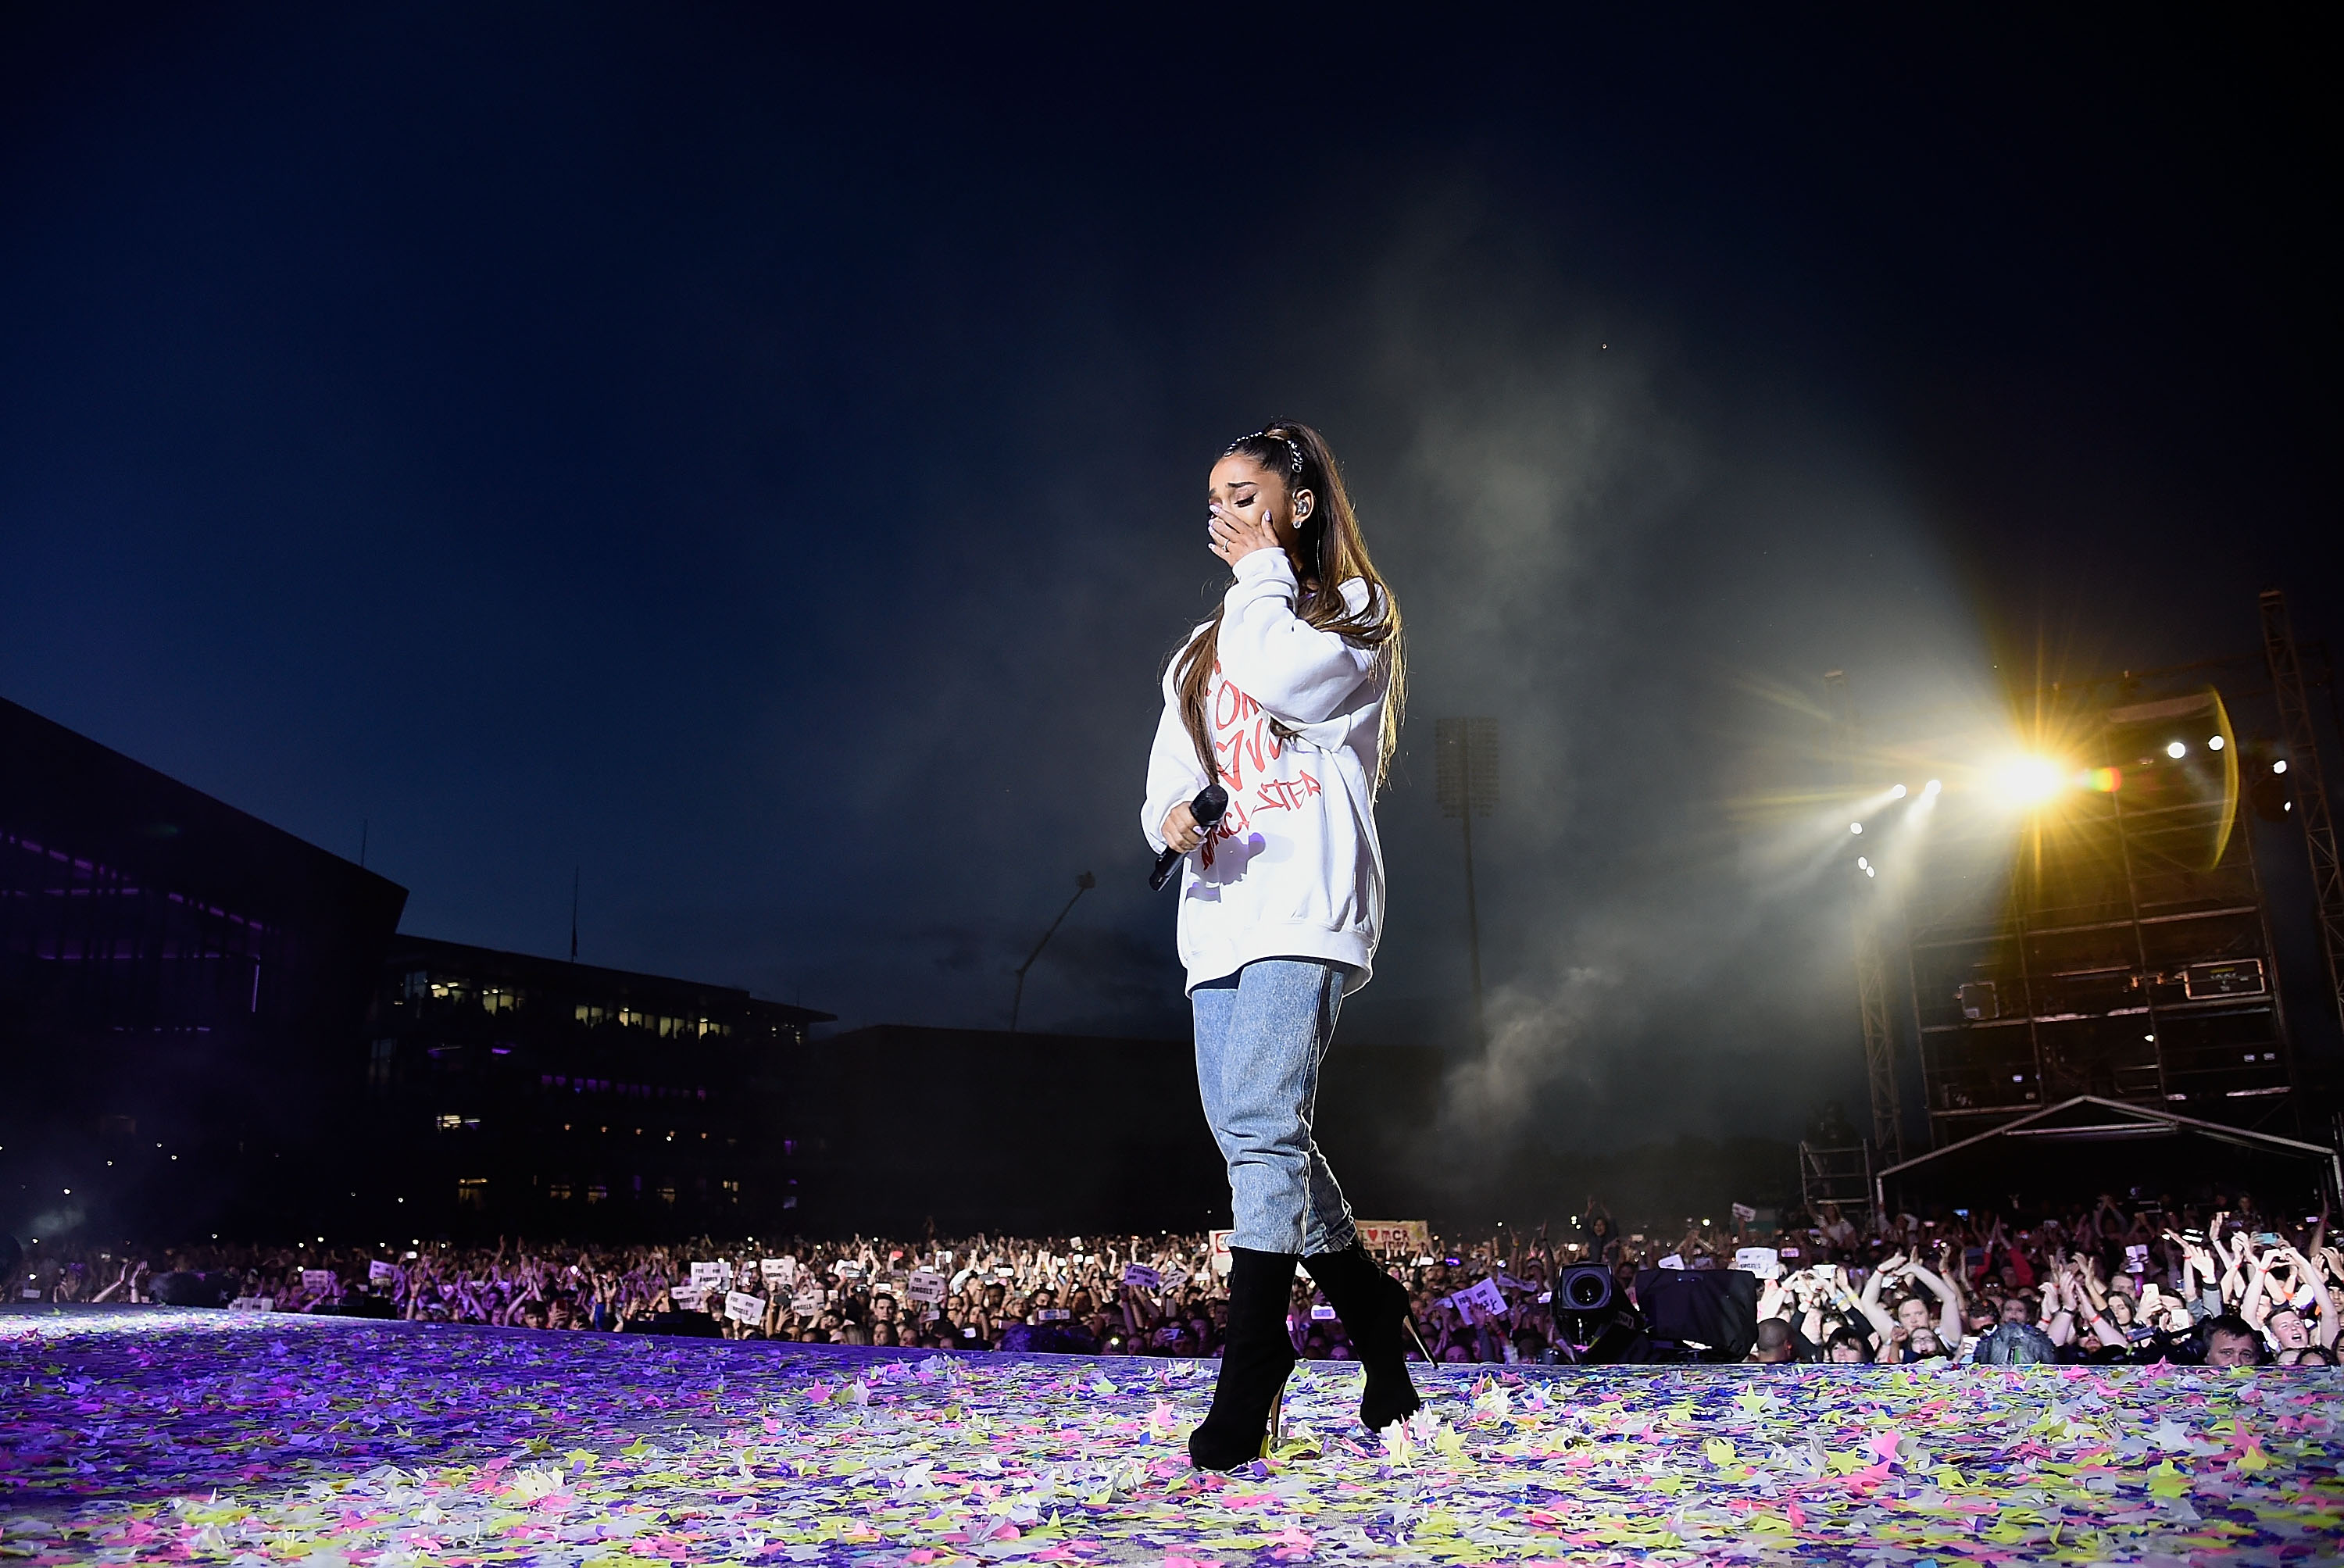 Ariana Grande wipes away a tear as she performs on stage during the One Love Manchester Benefit Concert at Old Trafford Cricket Ground on June 4, 2017 in Manchester, England.